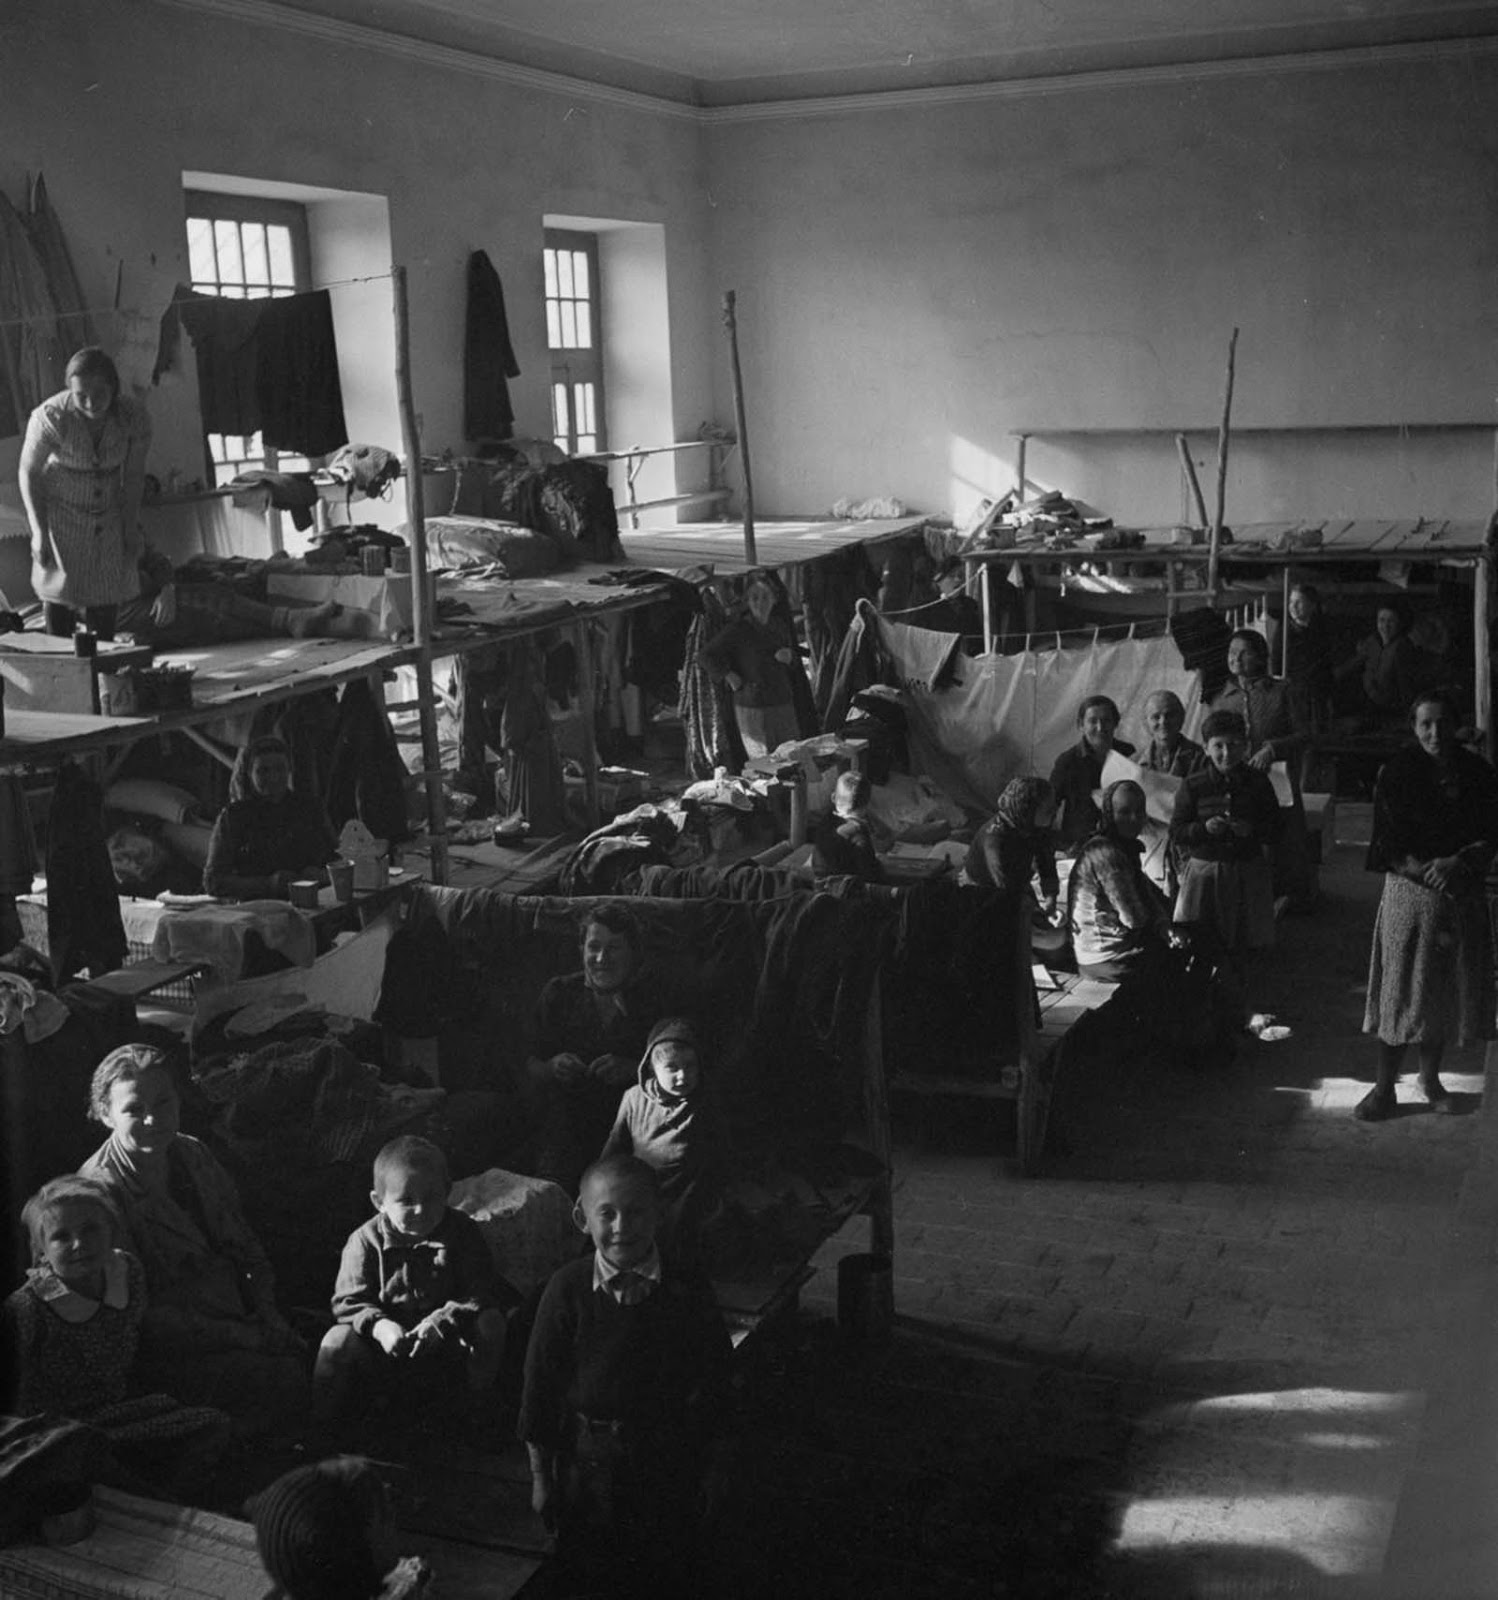 Thousands of the children who came to Iran came from orphanages in the Soviet Union, either because their parents had died or they were separated during deportations from Poland.